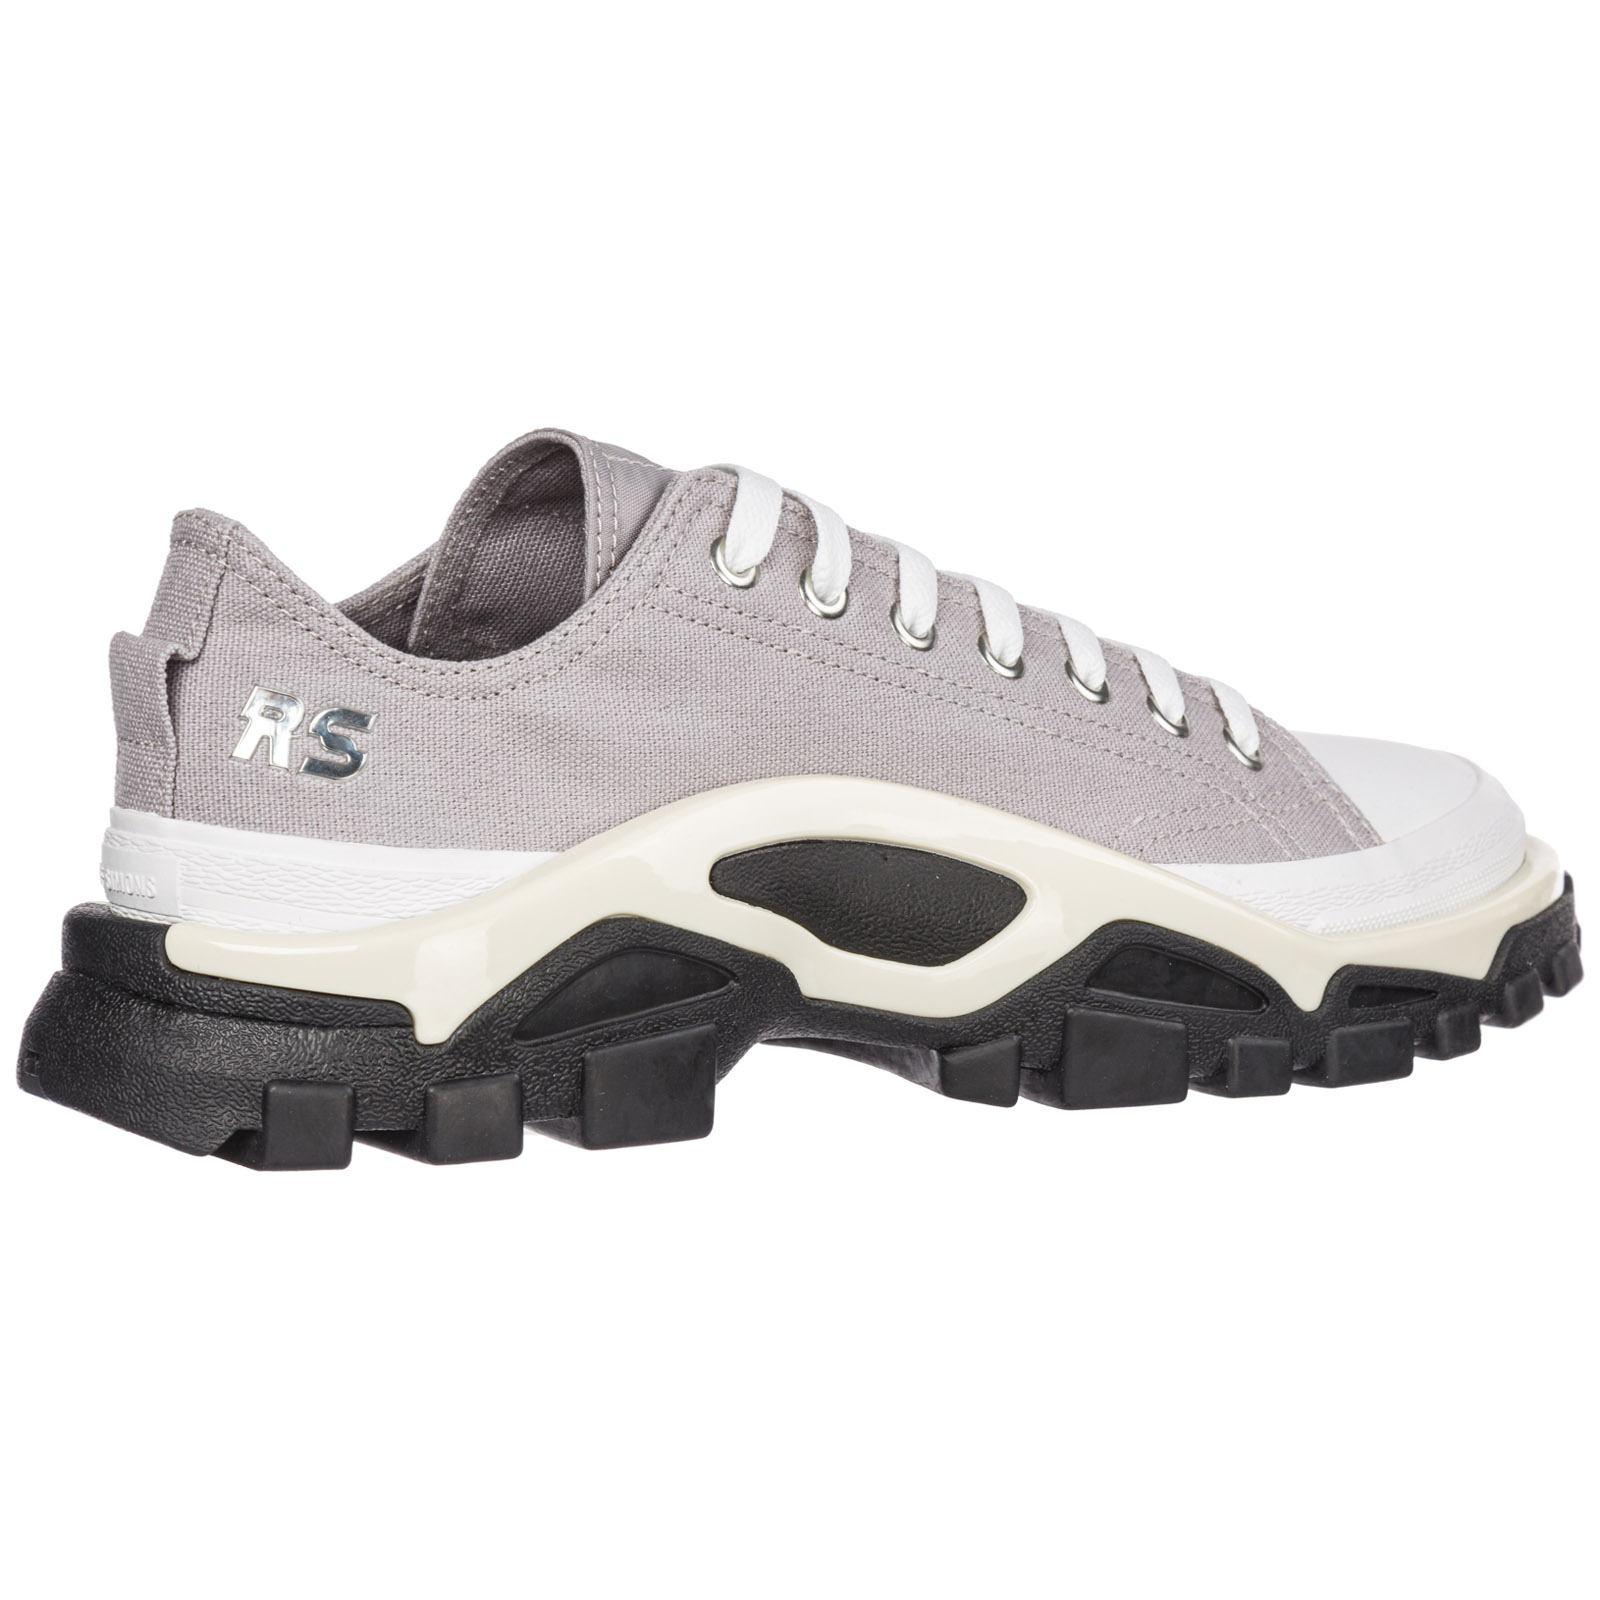 Sneakers Adidas by Raf Simons rs